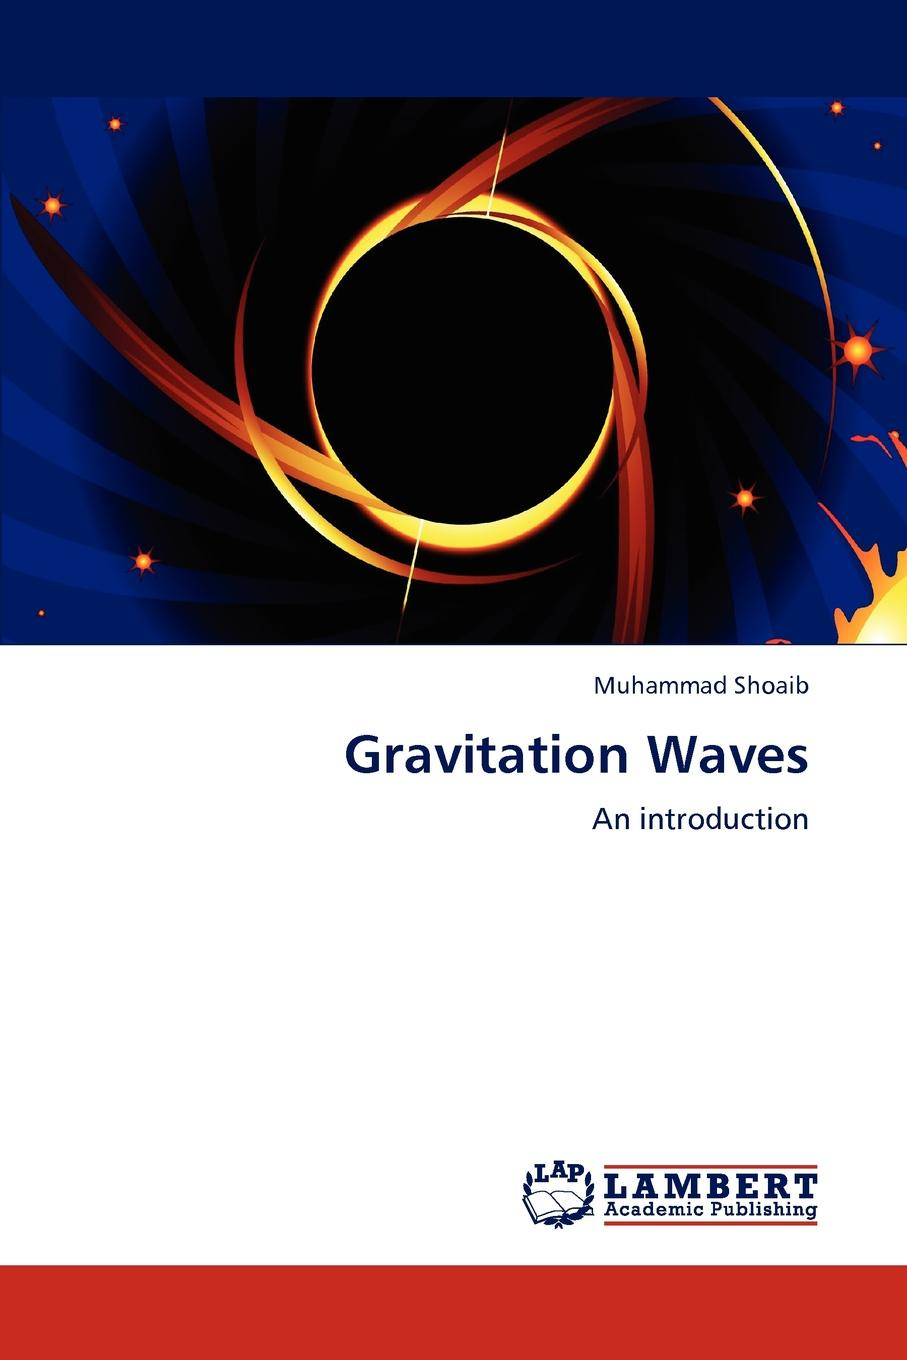 Muhammad Shoaib Gravitation Waves